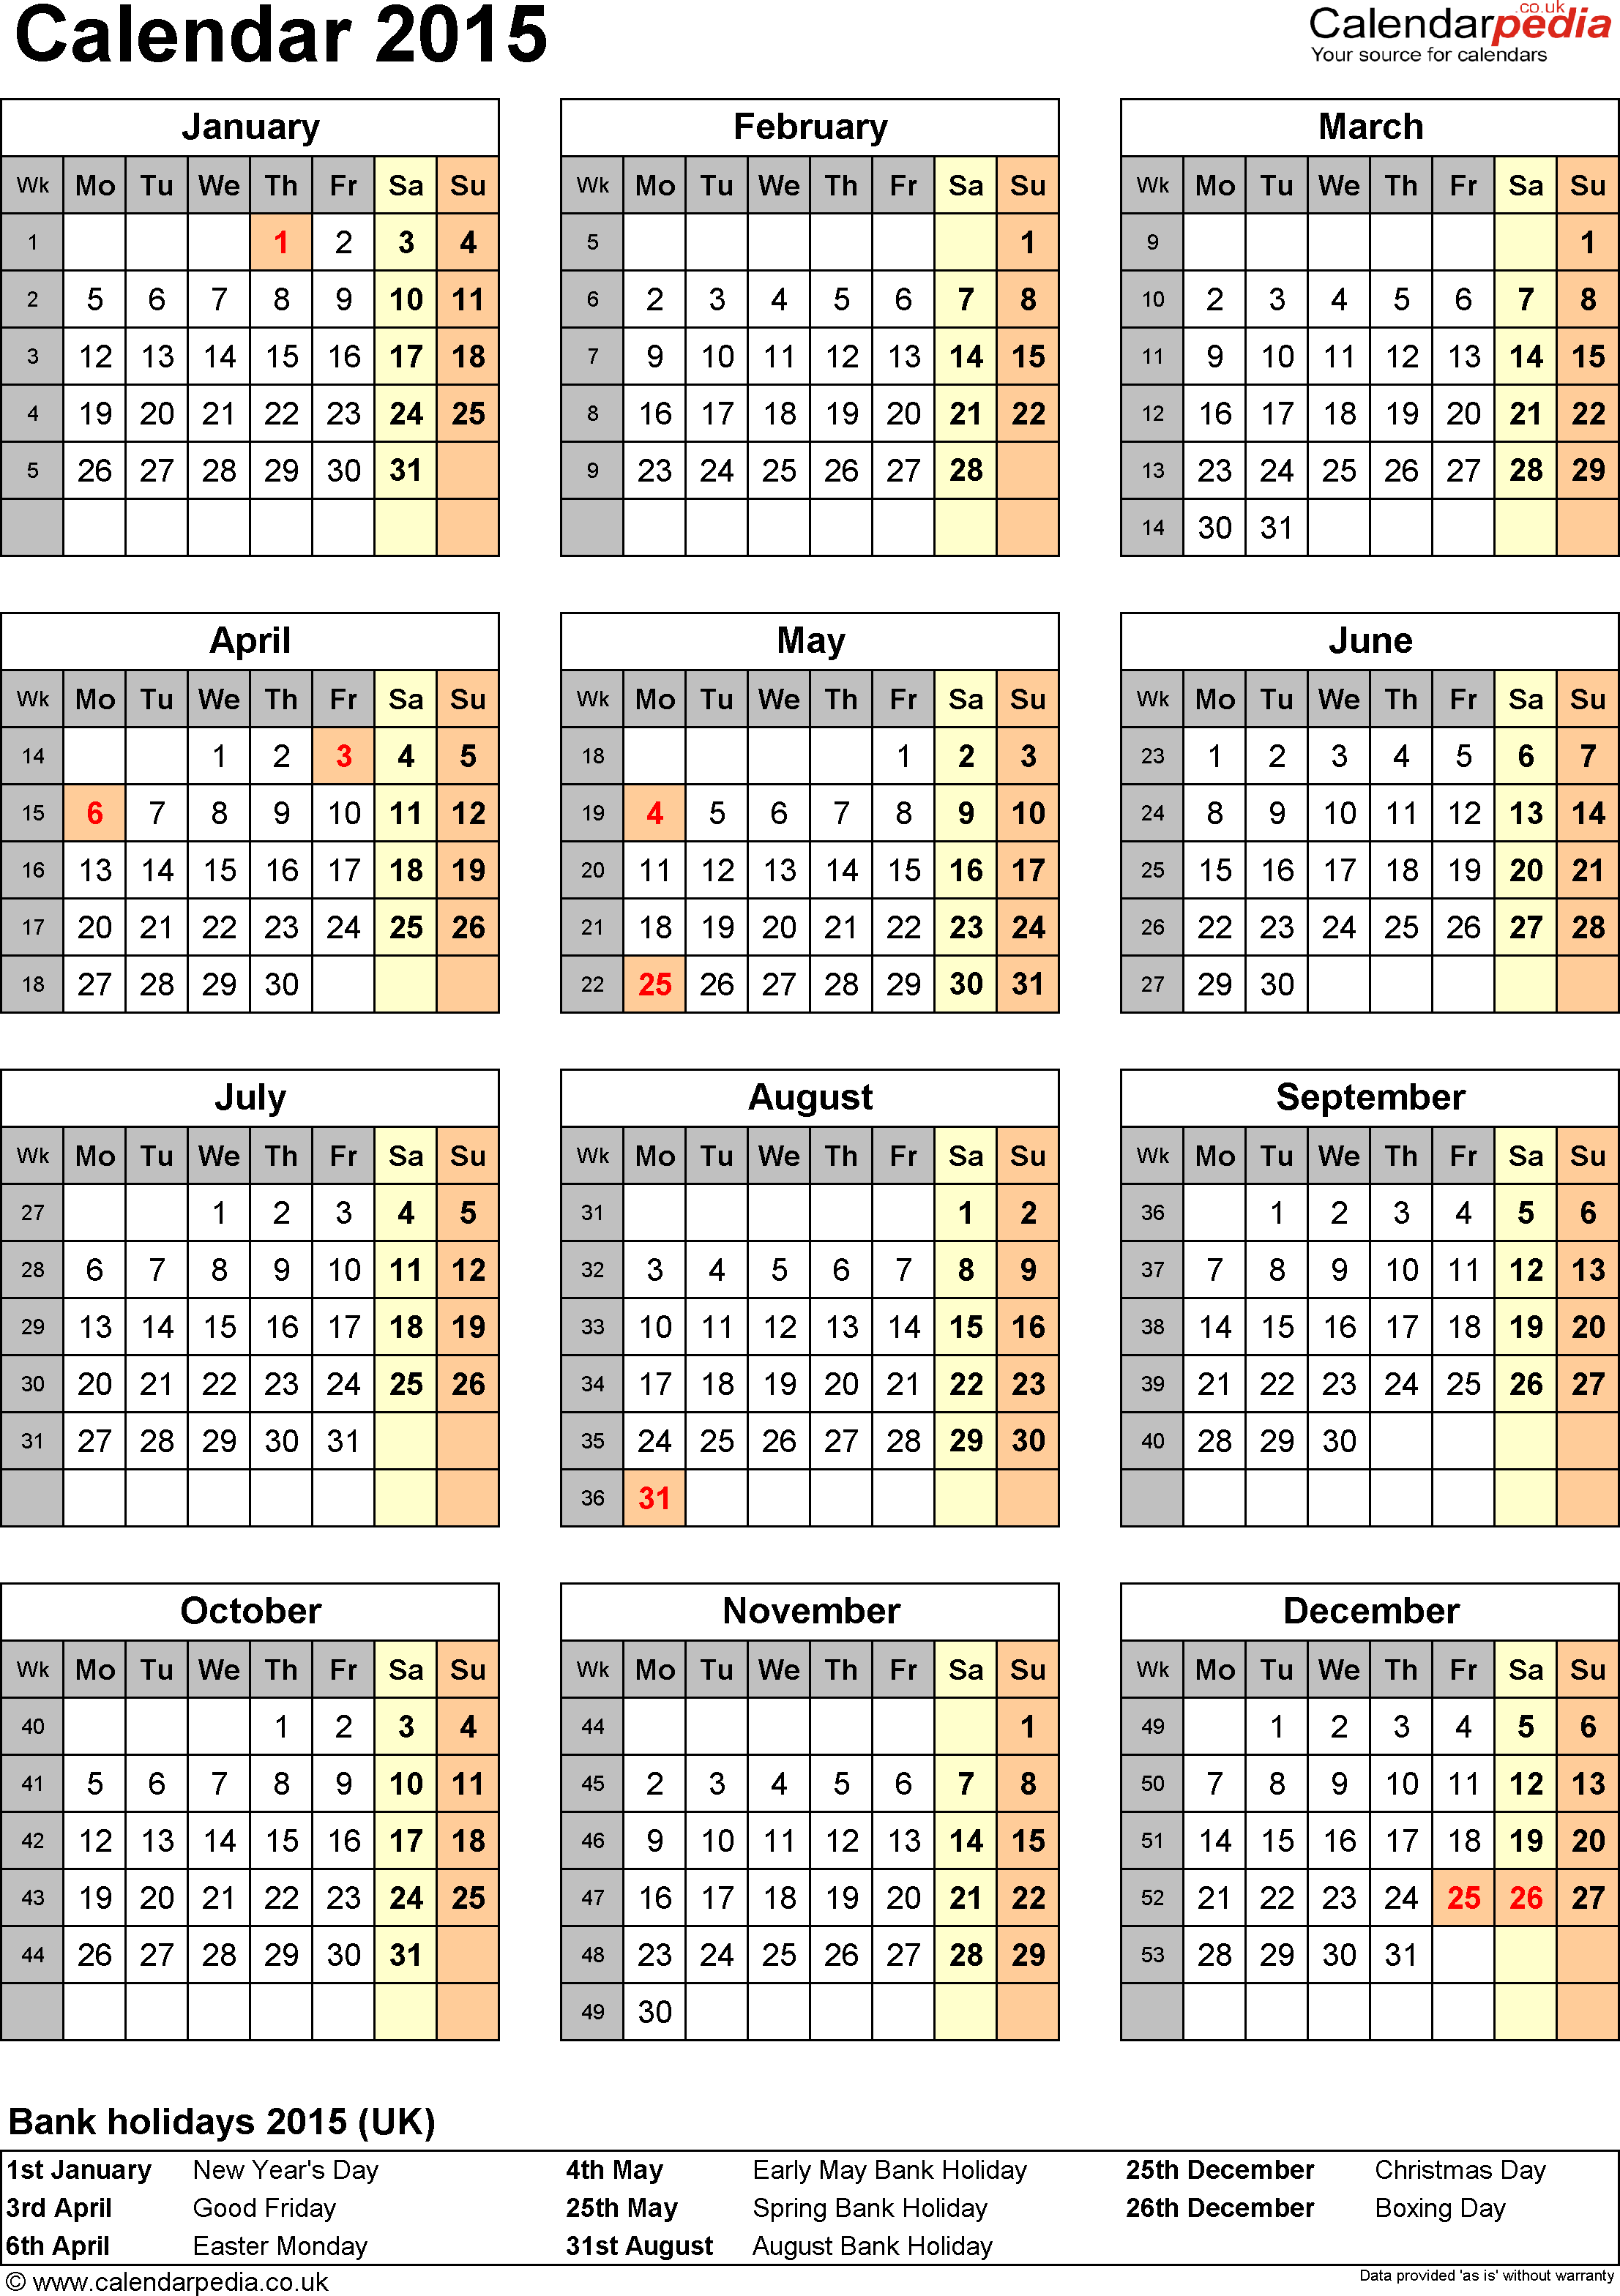 Calendar With N Holidays Pdf Free Download : Calendar uk with bank holidays excel pdf word templates